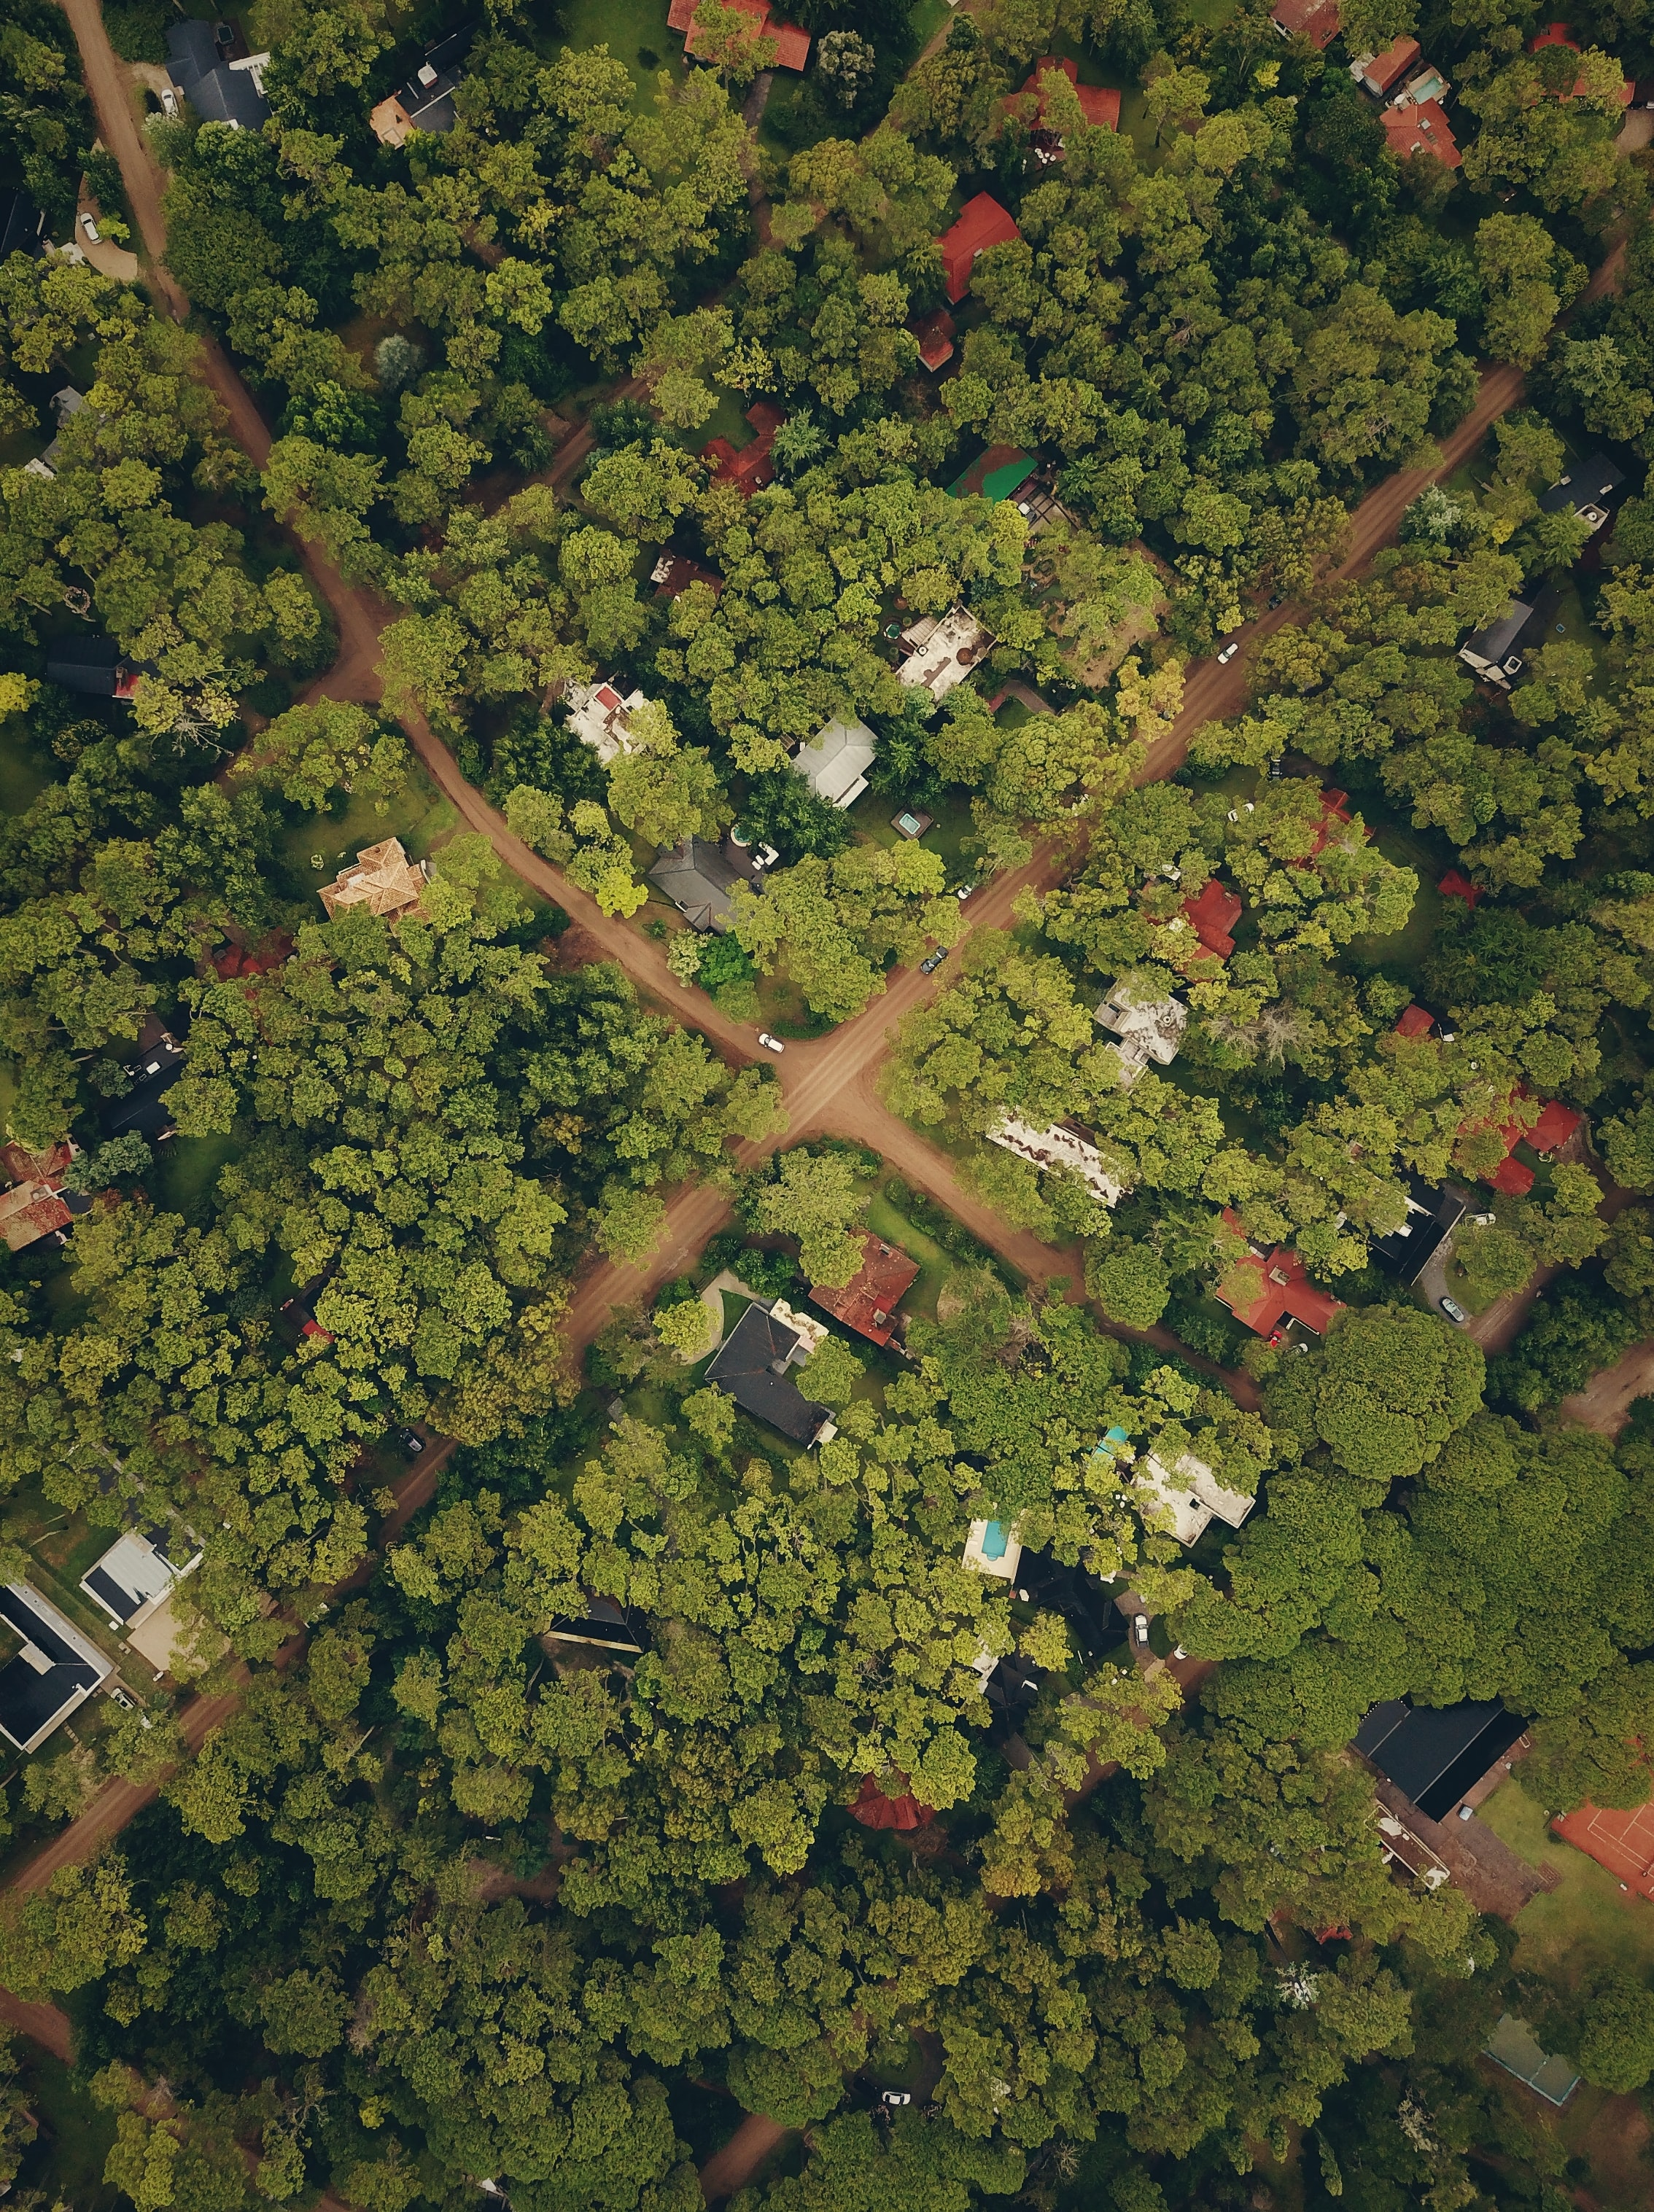 aerial view photography of village during daytime